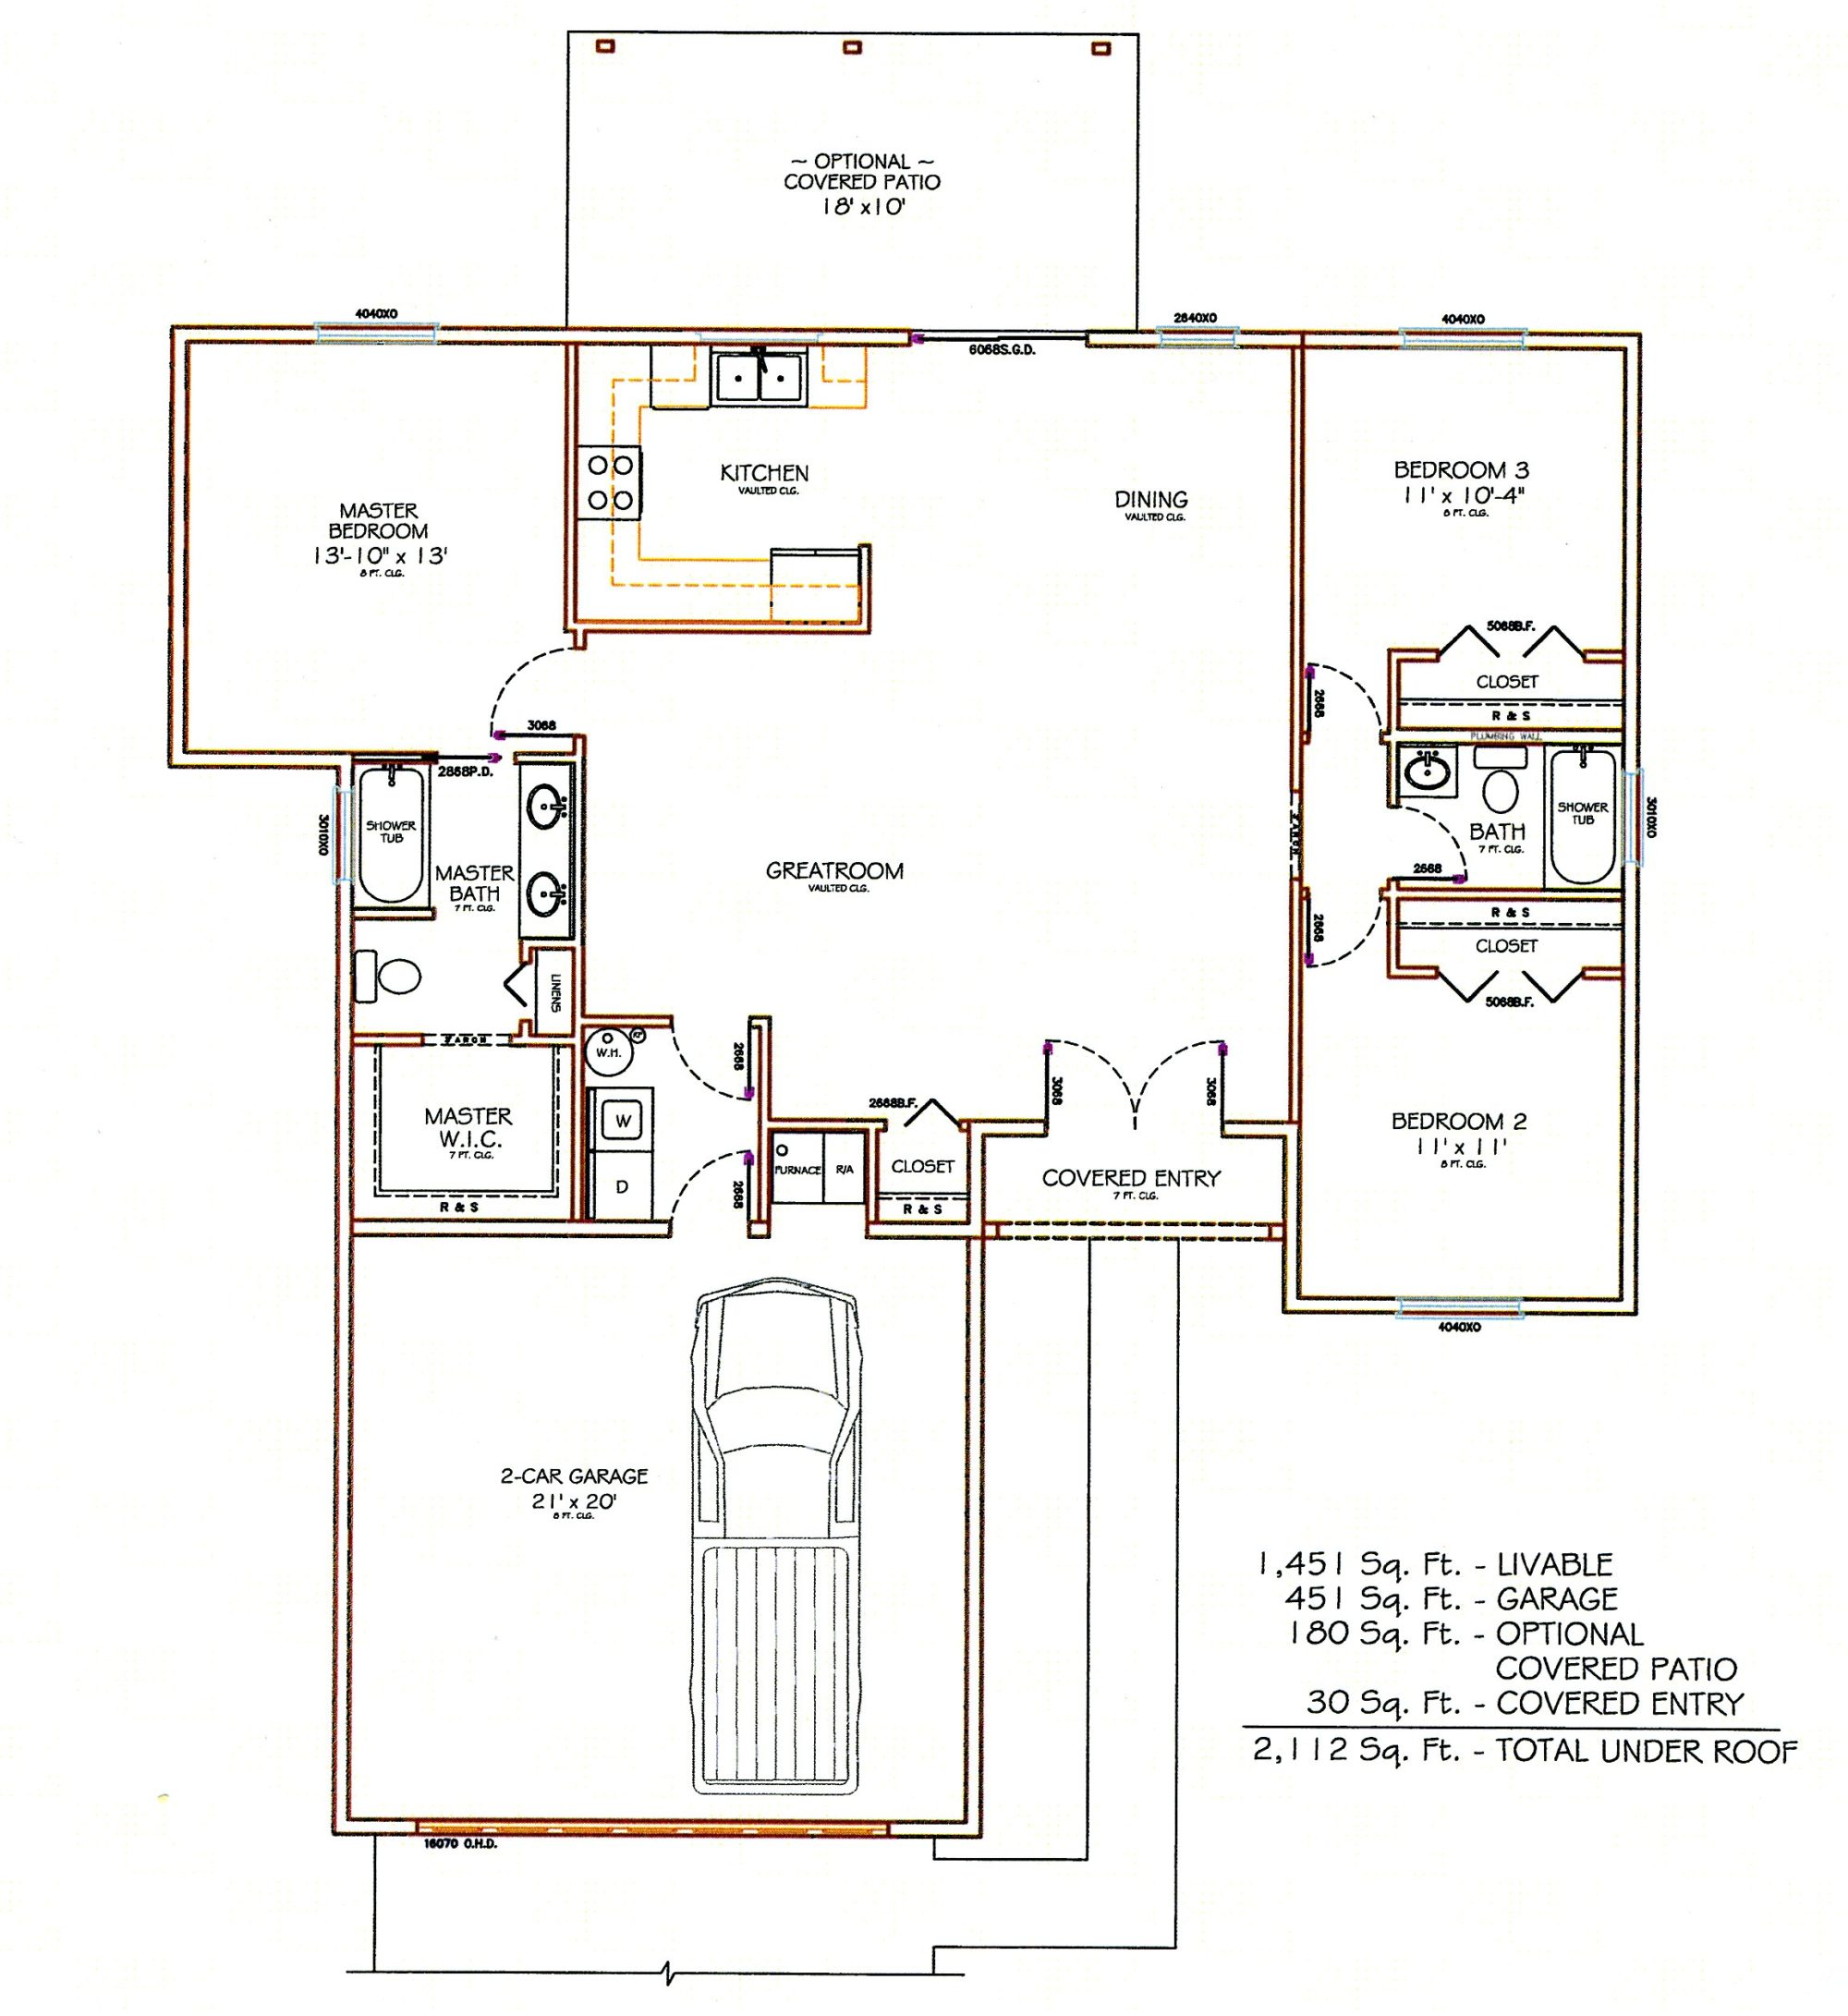 Sierra Remodeling Custom Home Model 1451 floor plan